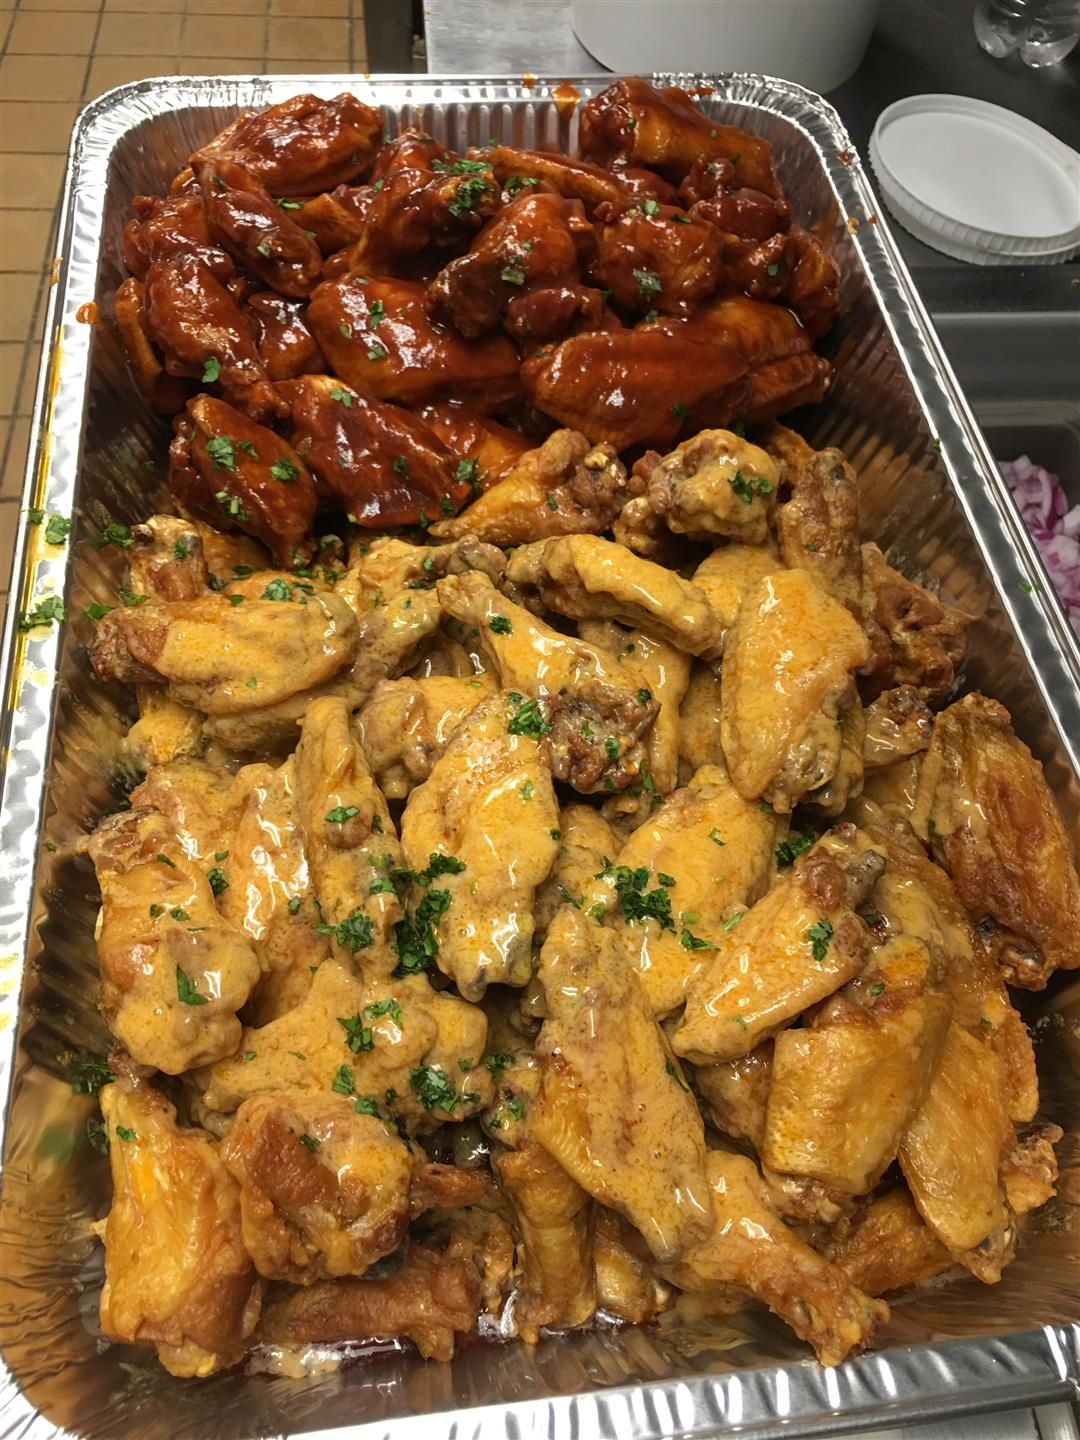 assortment of wings in a tray